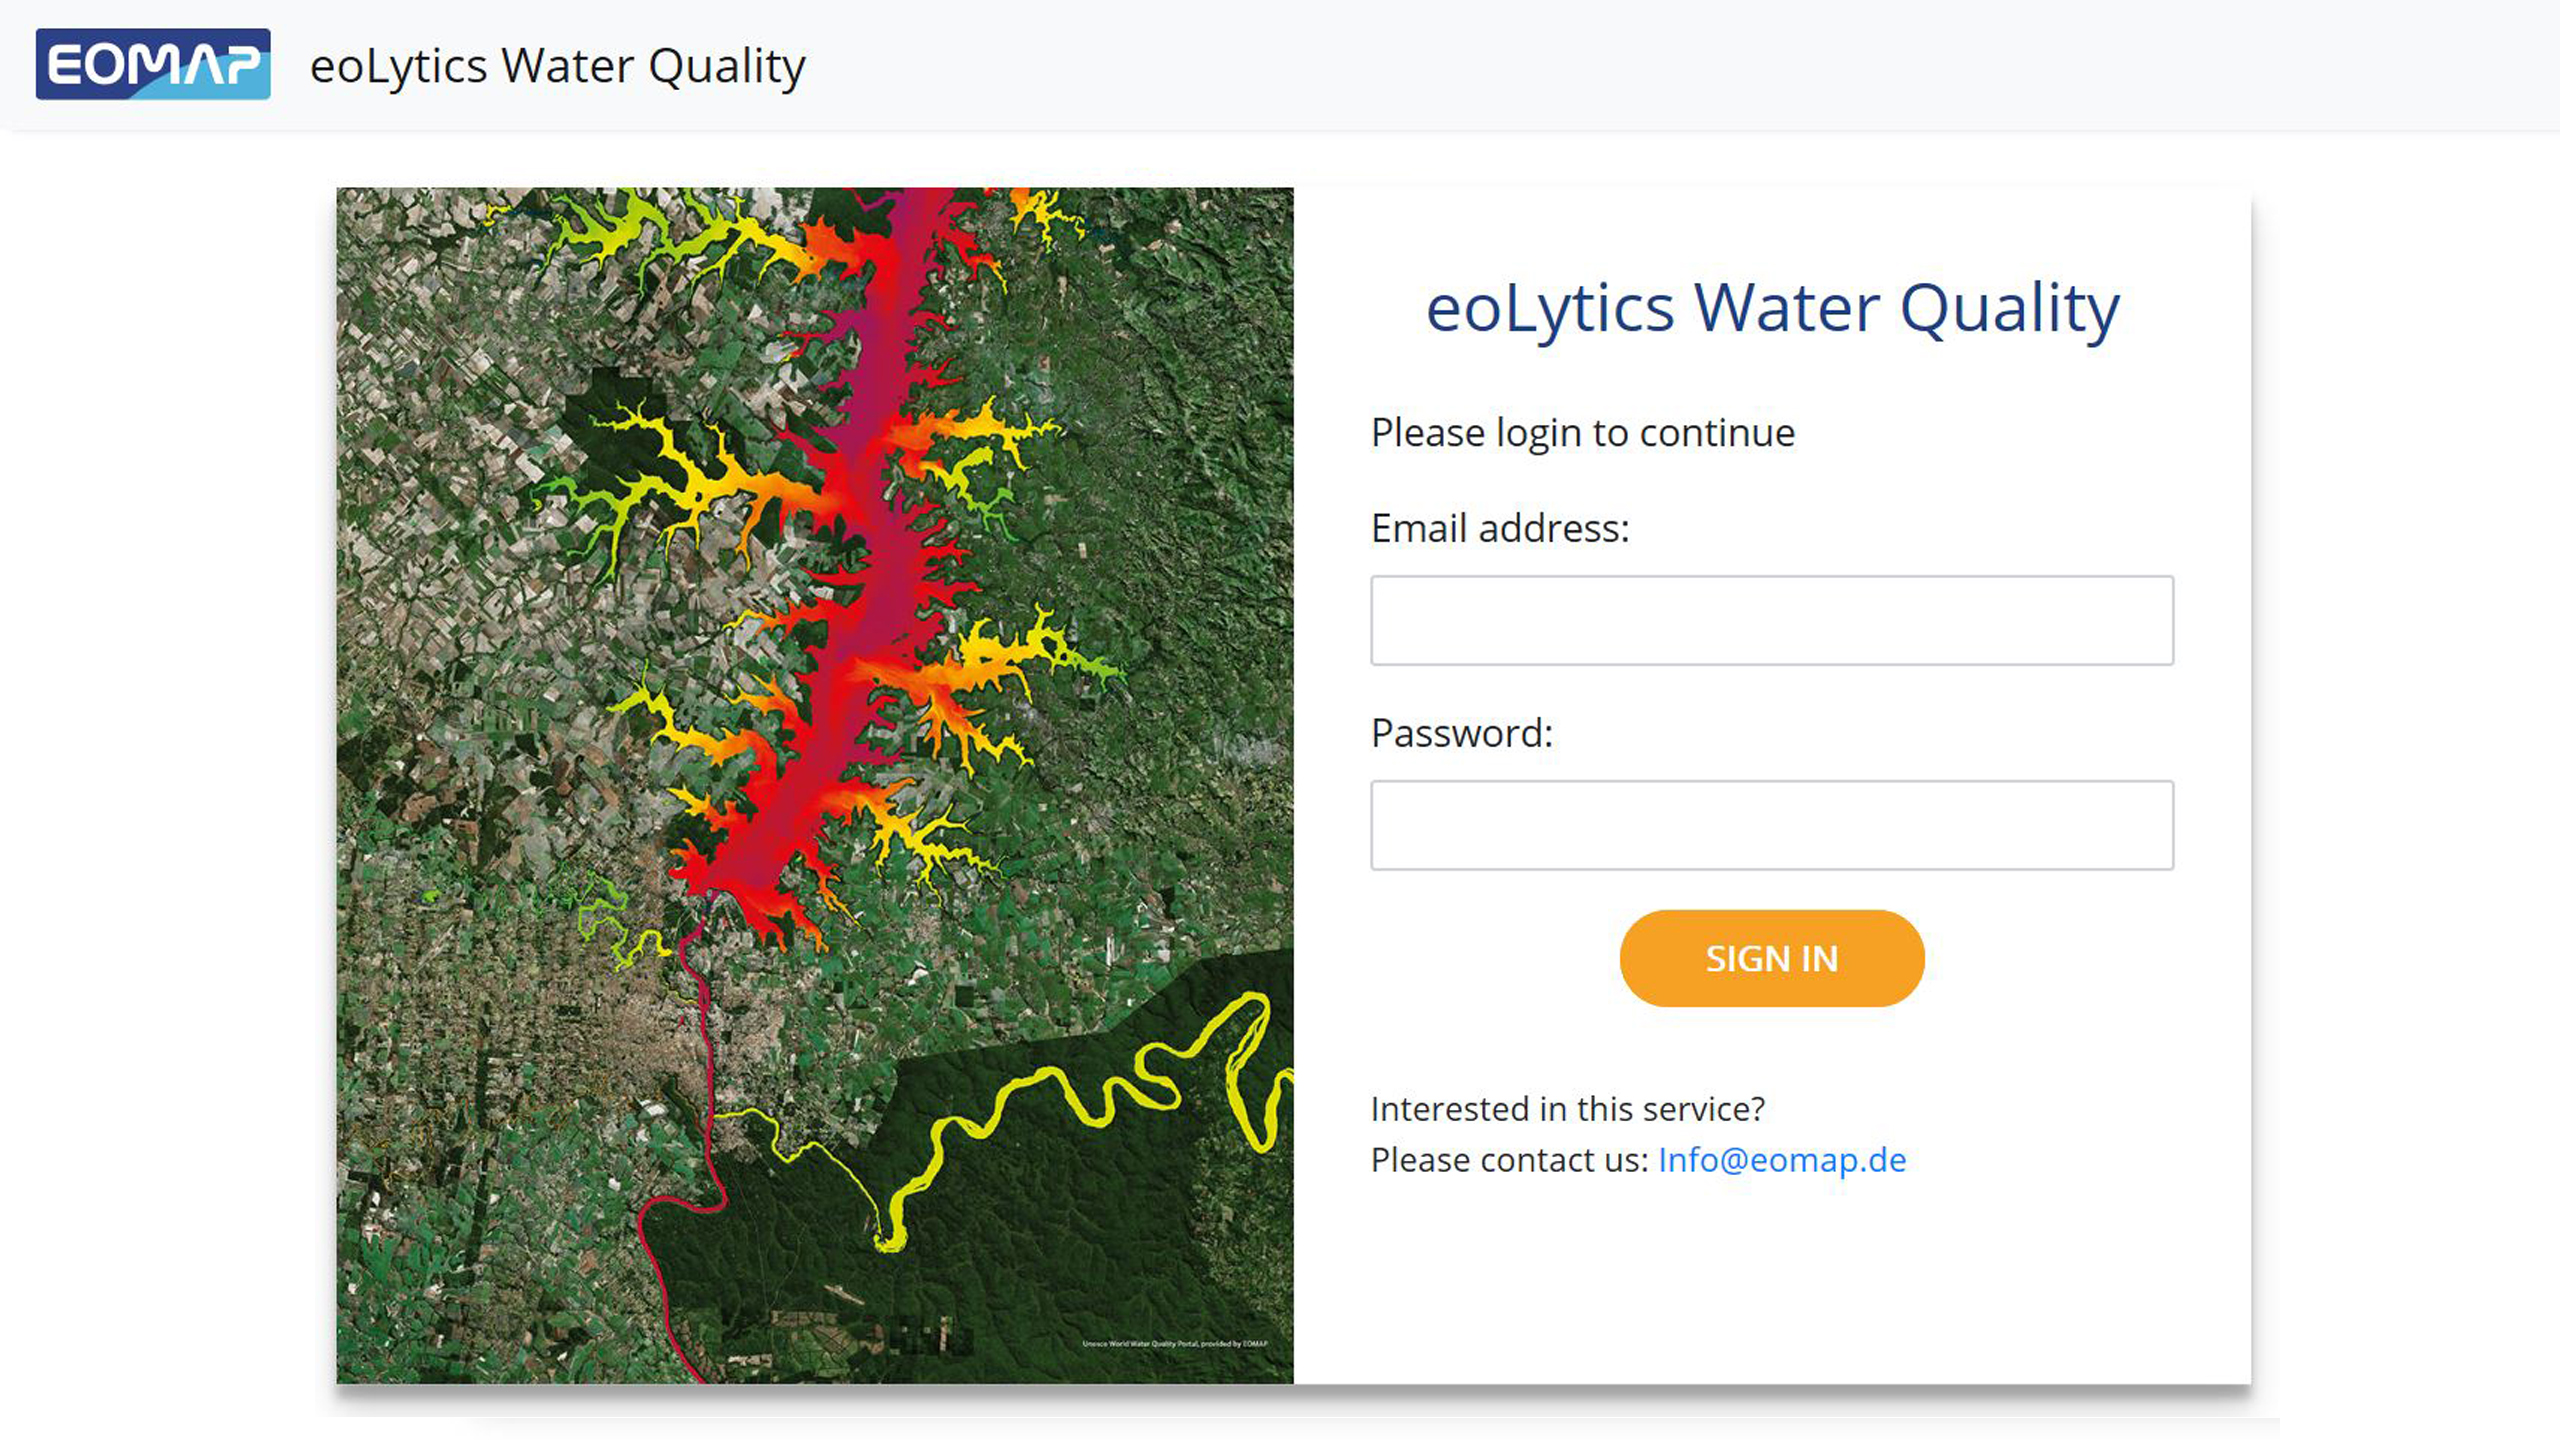 EOMAP eoLytics Water Quality